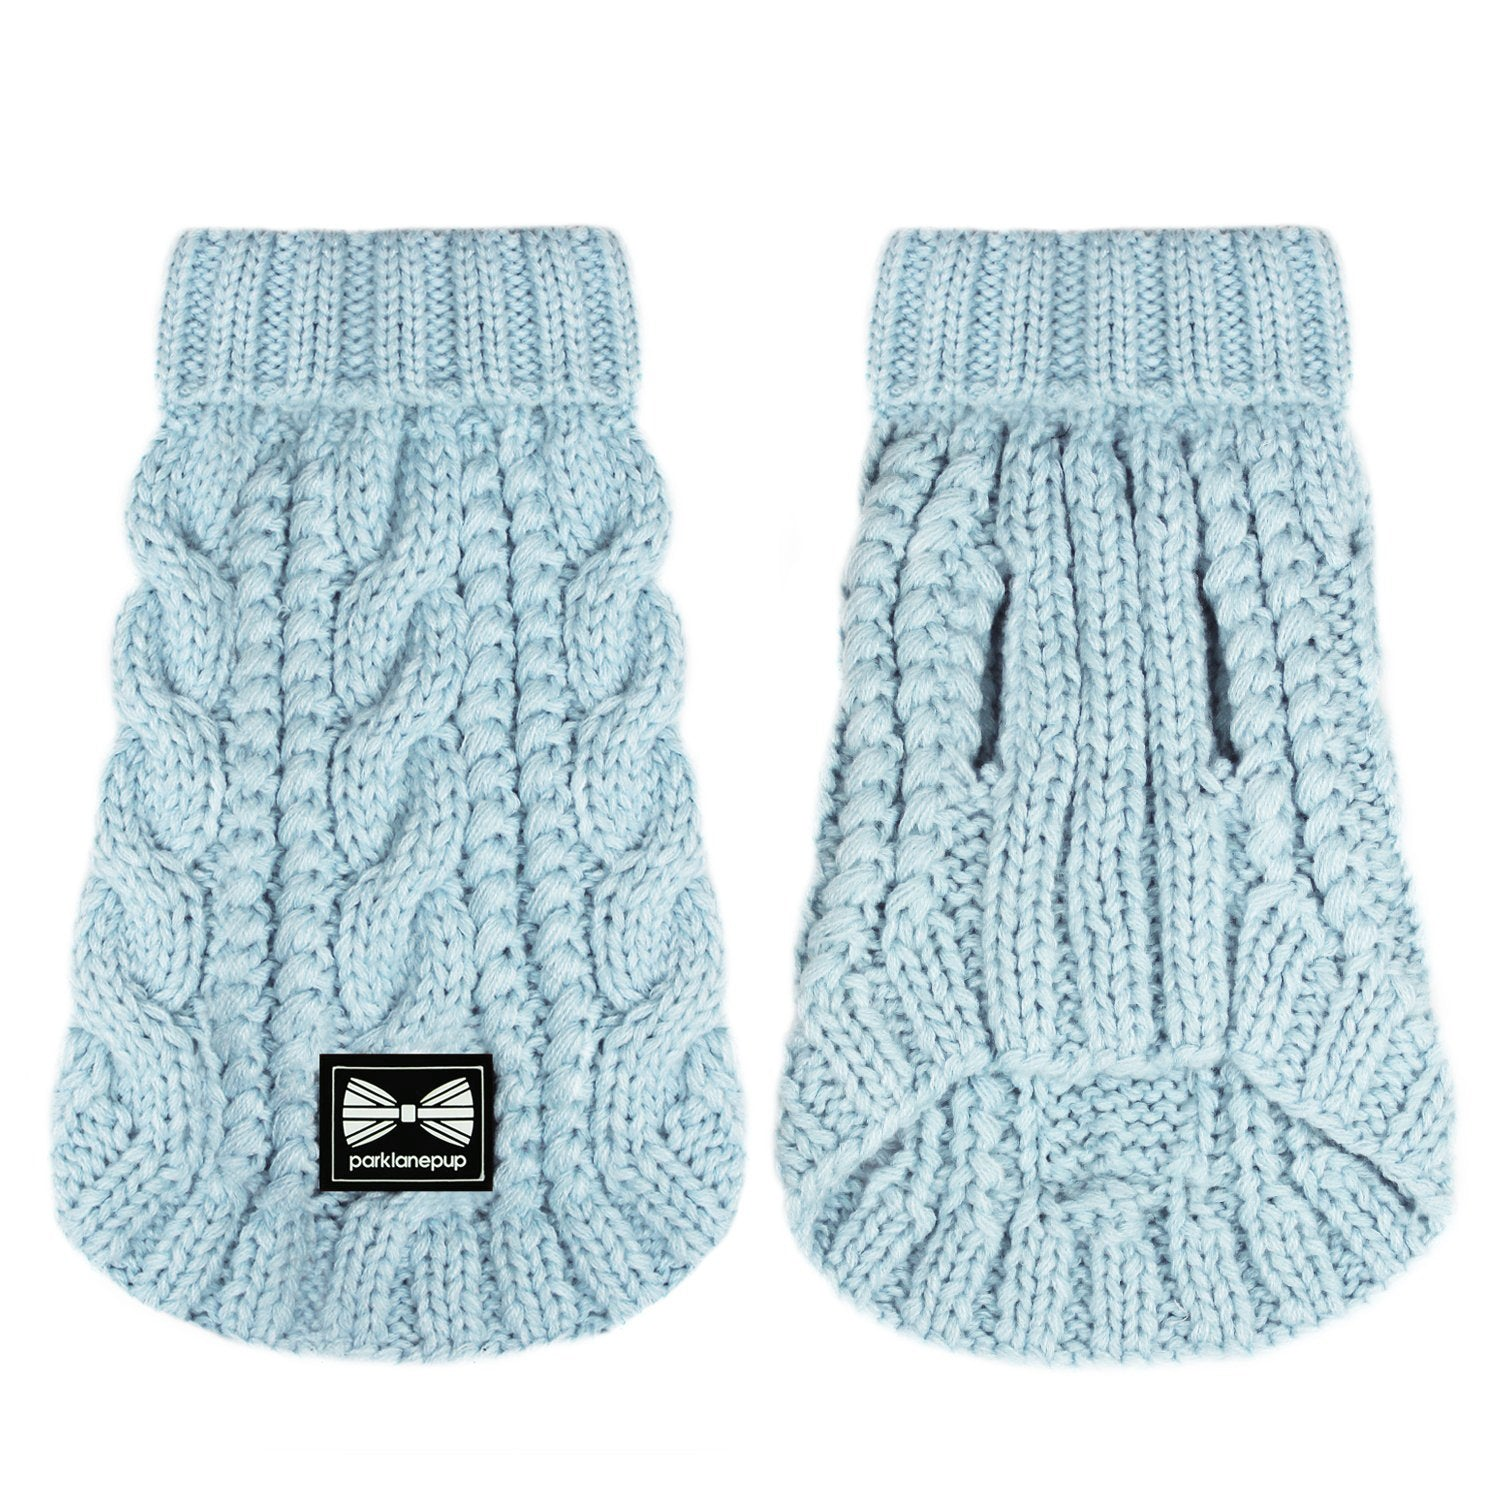 (Sleeveless) Cosy Knitted Jumper: Baby Blue